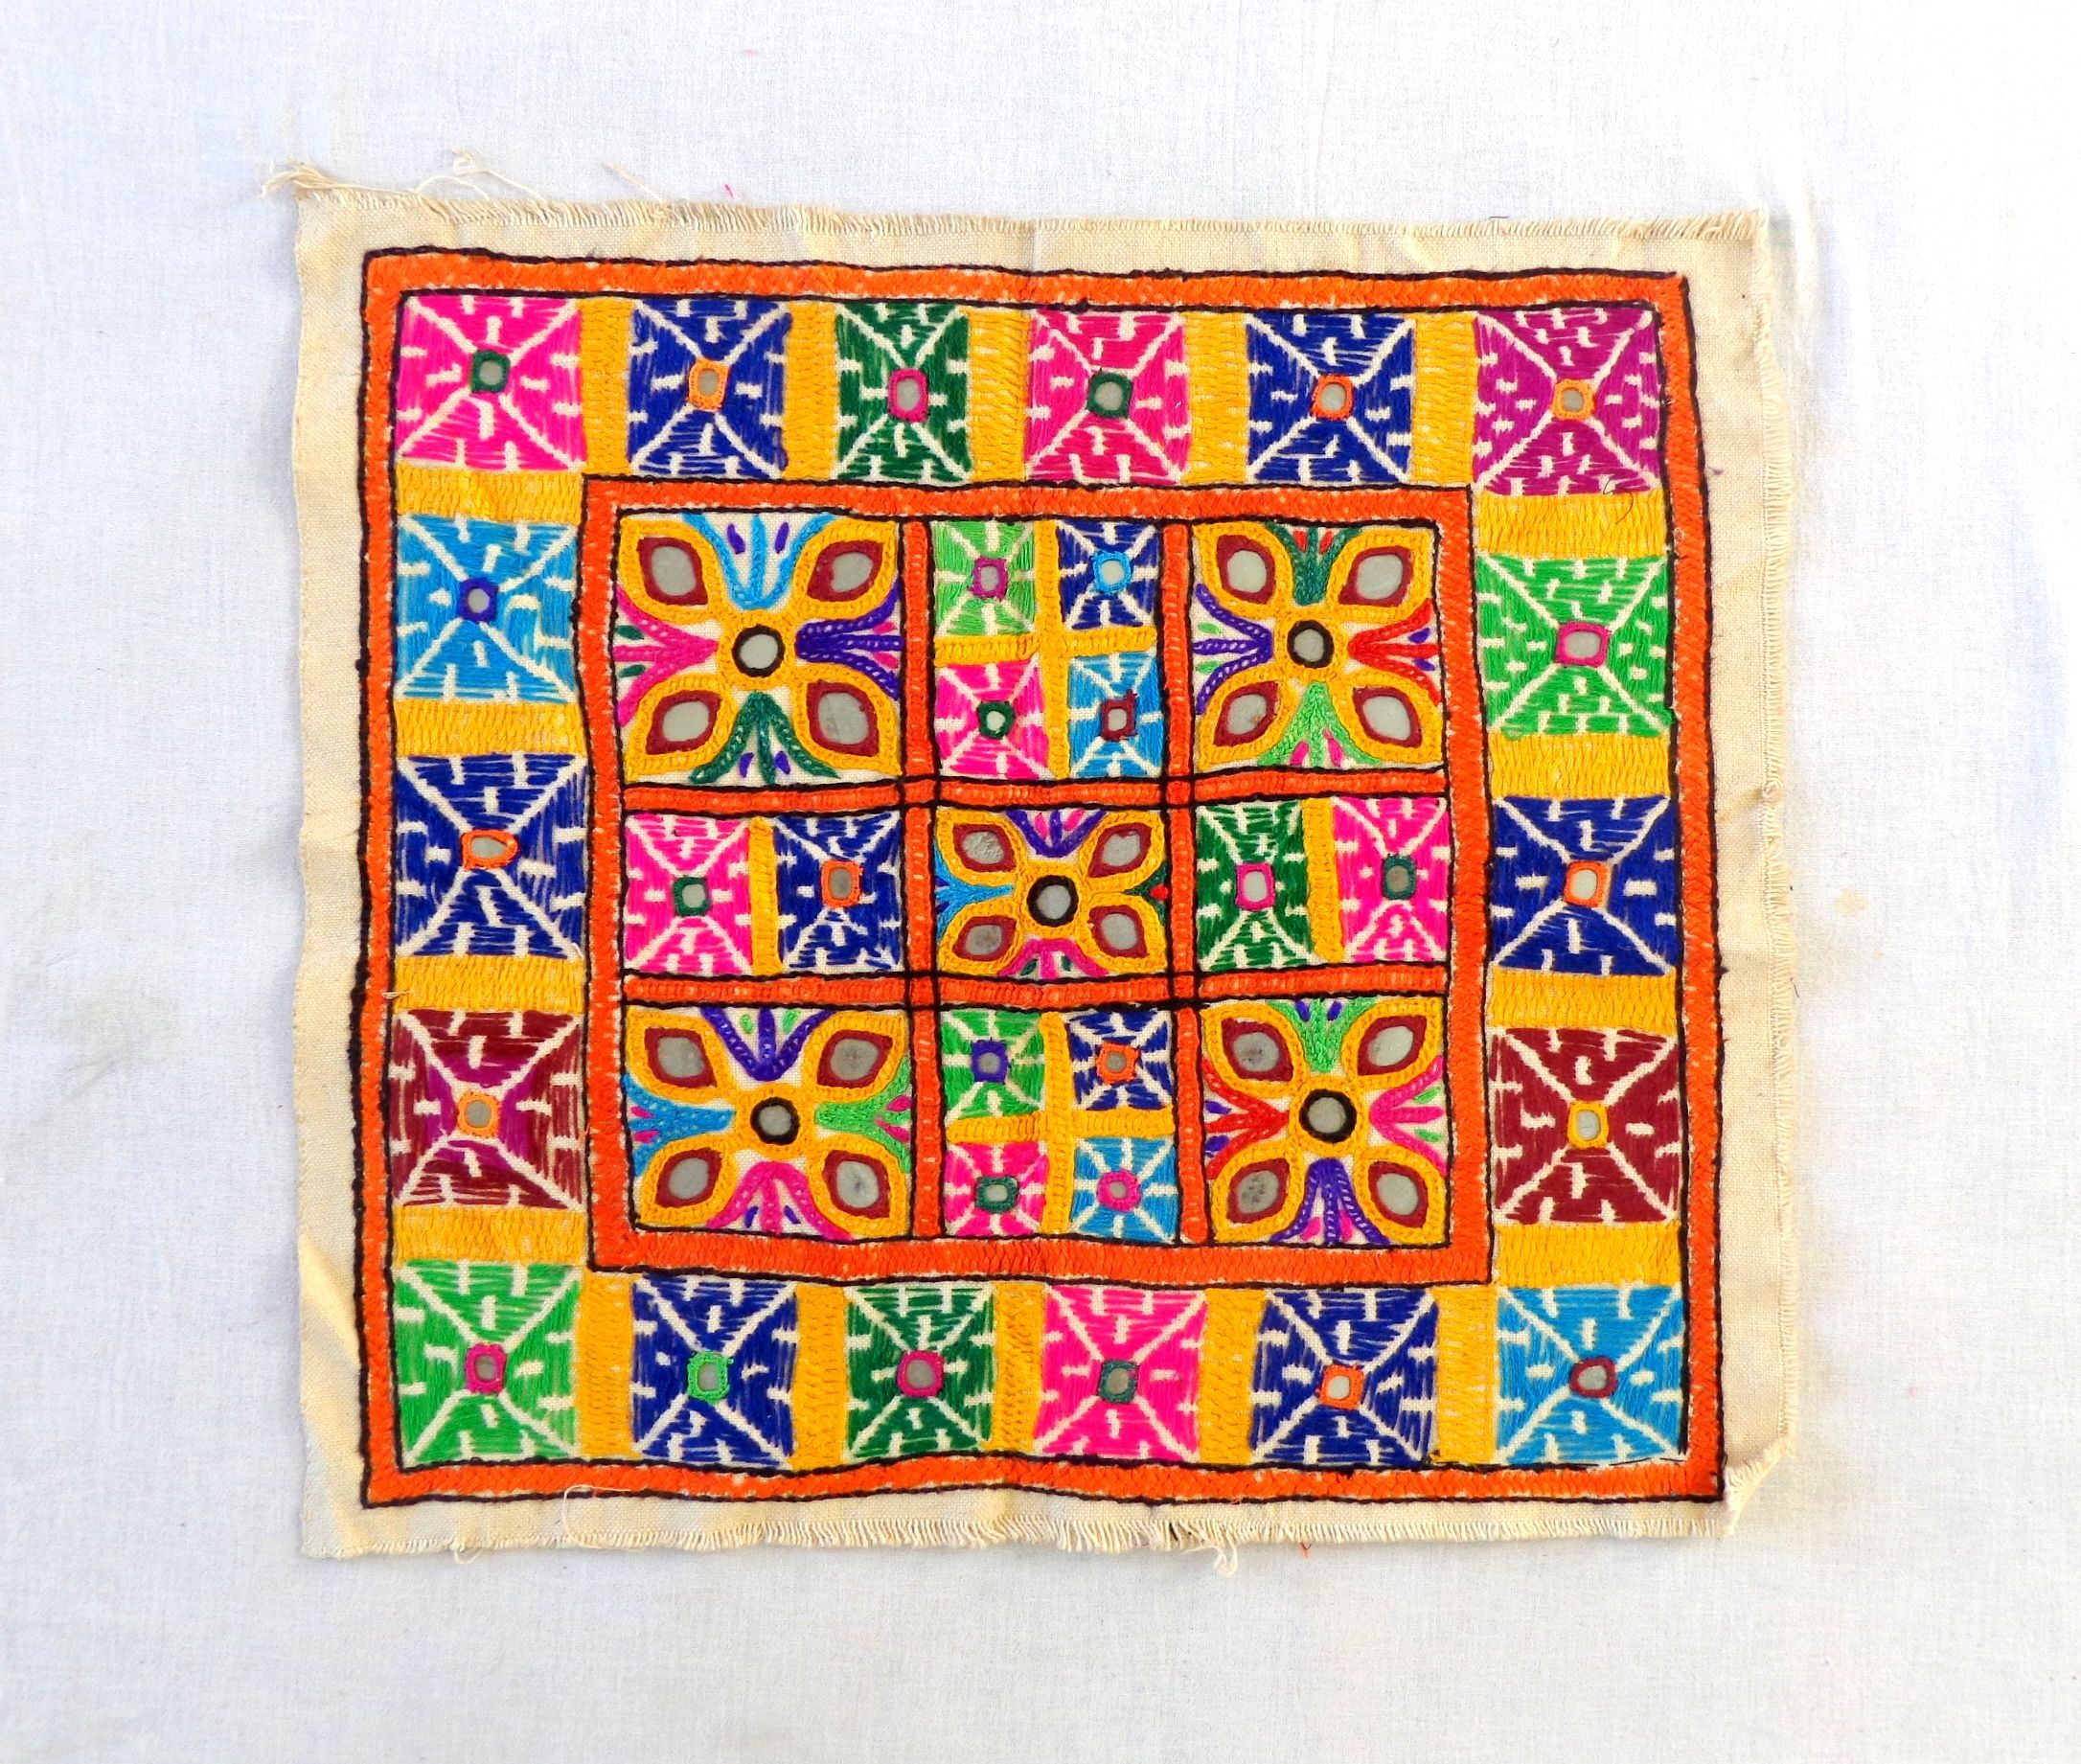 1960s Kutch embroidery Patch Gujarati Rabari embroidery patch